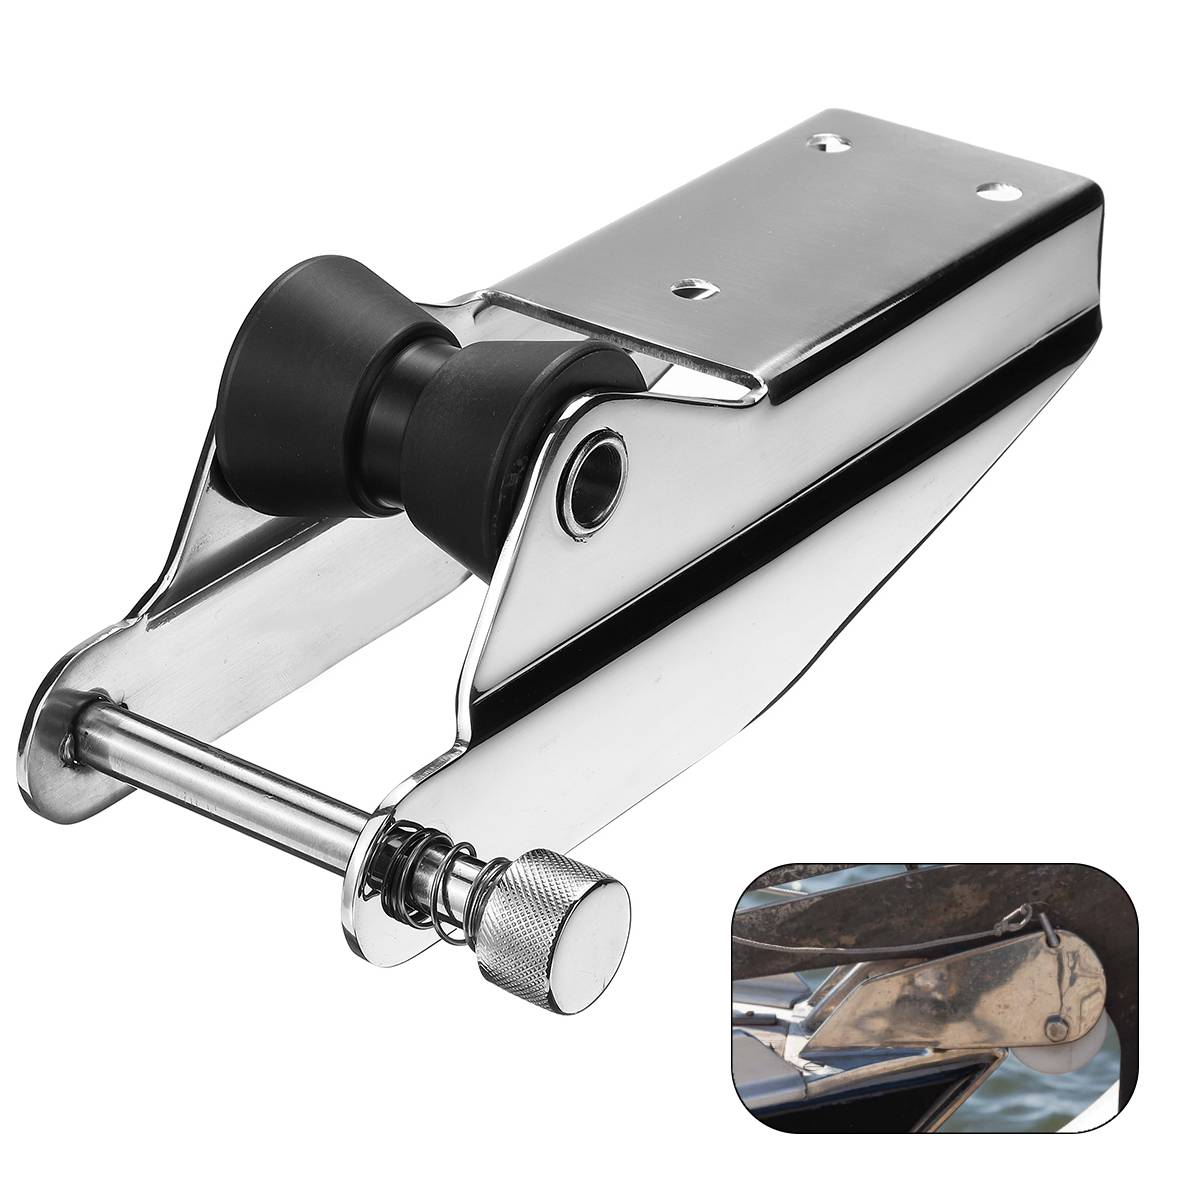 Heavy 316 Stainless Steel Bow Anchor Roller For Fixed Marine Boat Docking Black Nylon Roller Spring Loaded Pin Prevent